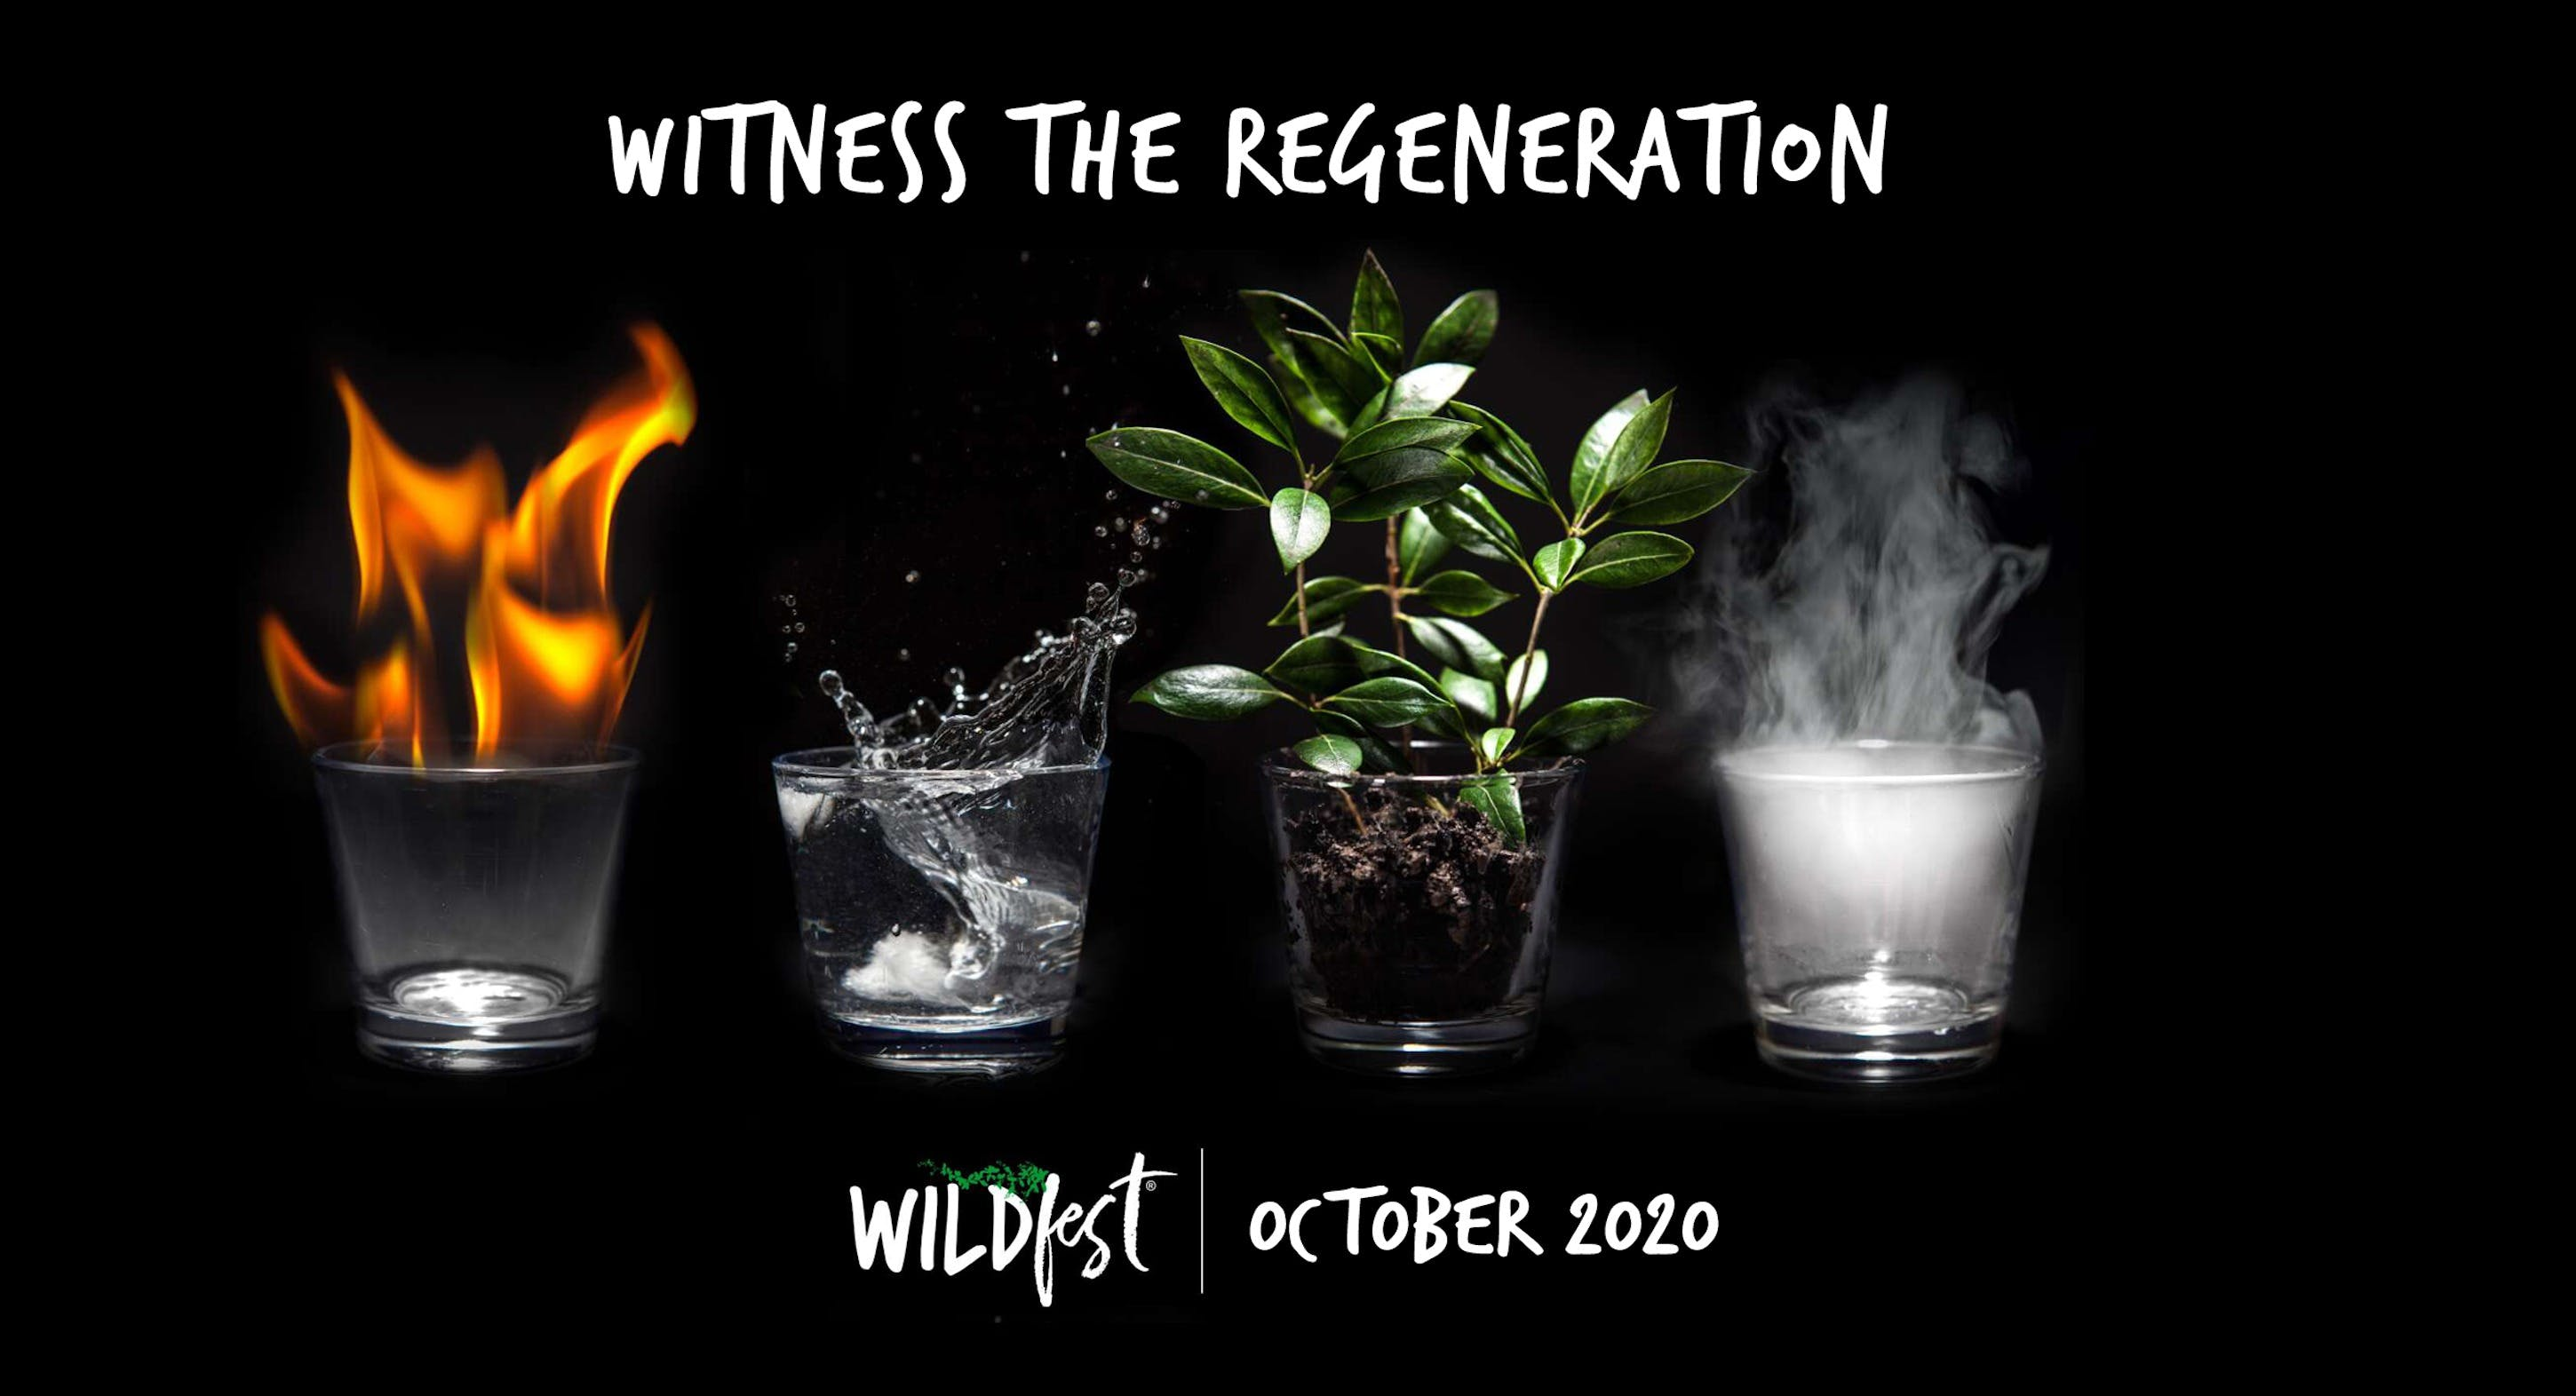 Wildfest - Annual Festival - Foster Accommodation